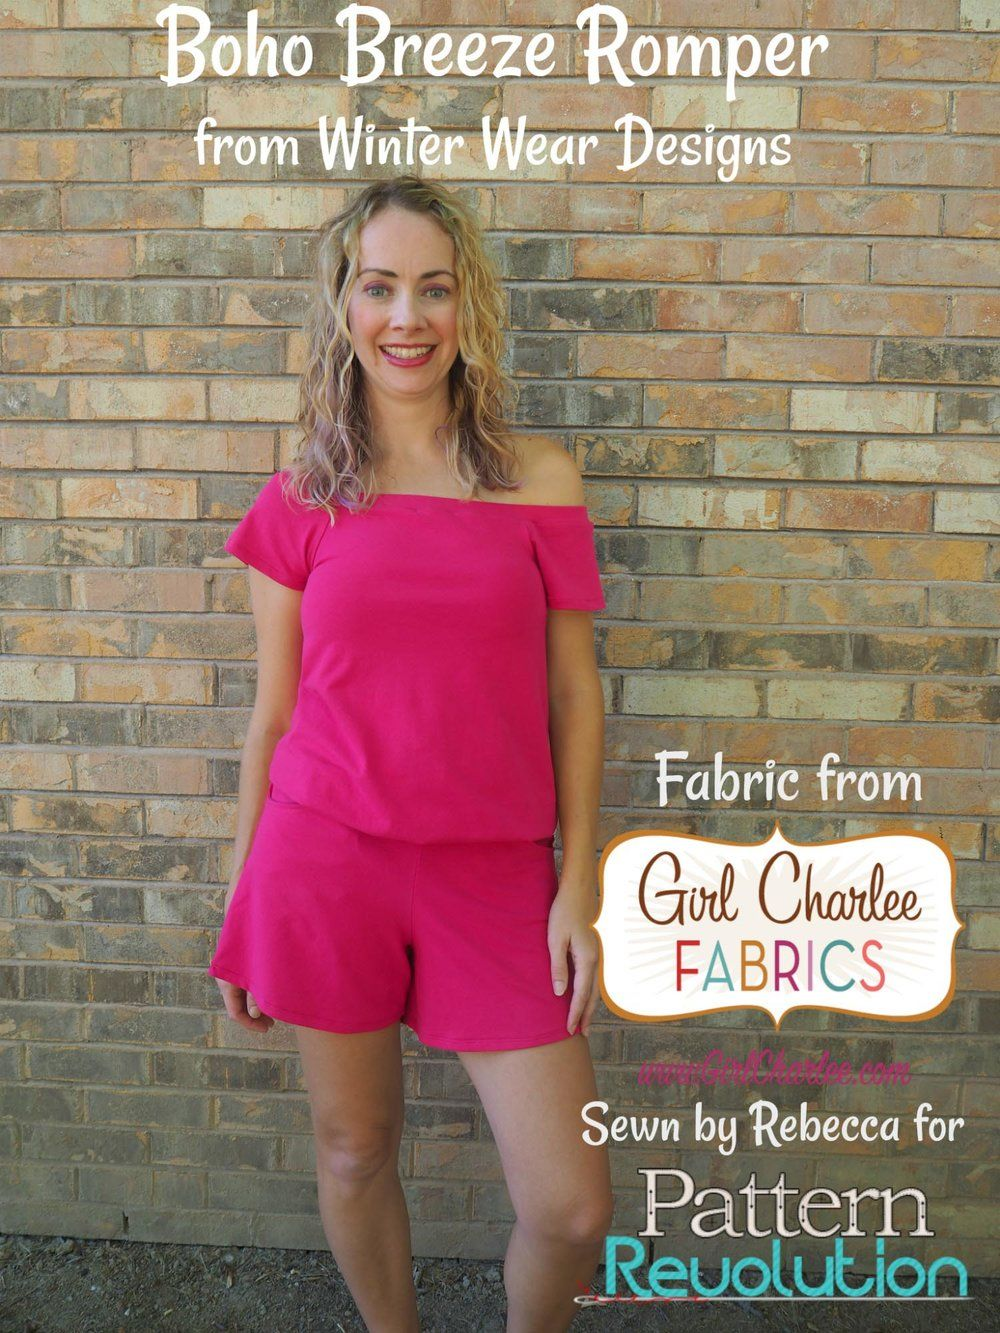 Summer Selfie Sewing: Boho Breeze Romper by Winter Wear Designs and ...